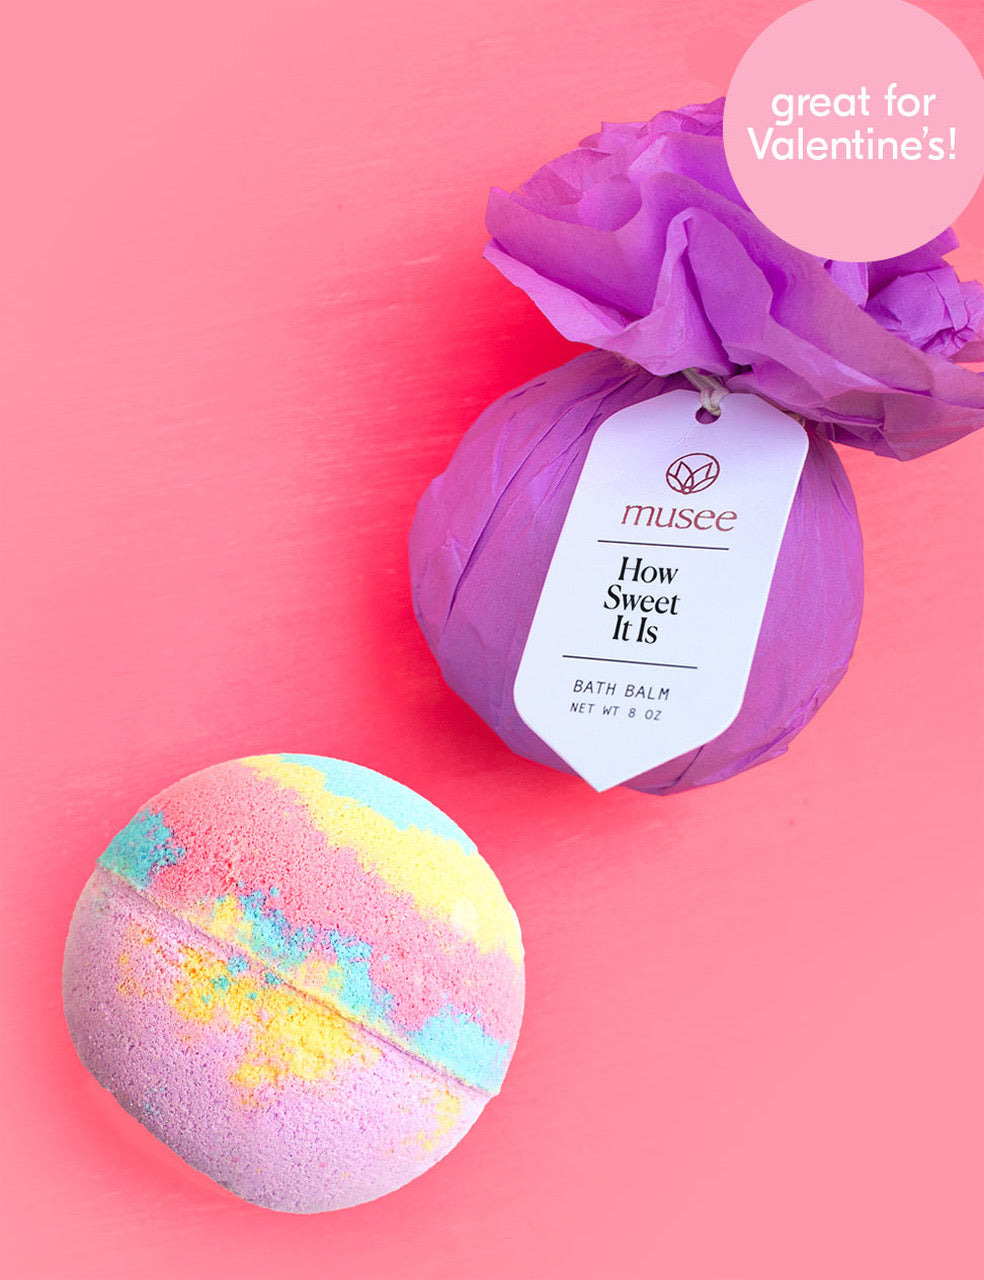 Musee Bath Bomb - How Sweet It Is - Monogram Market